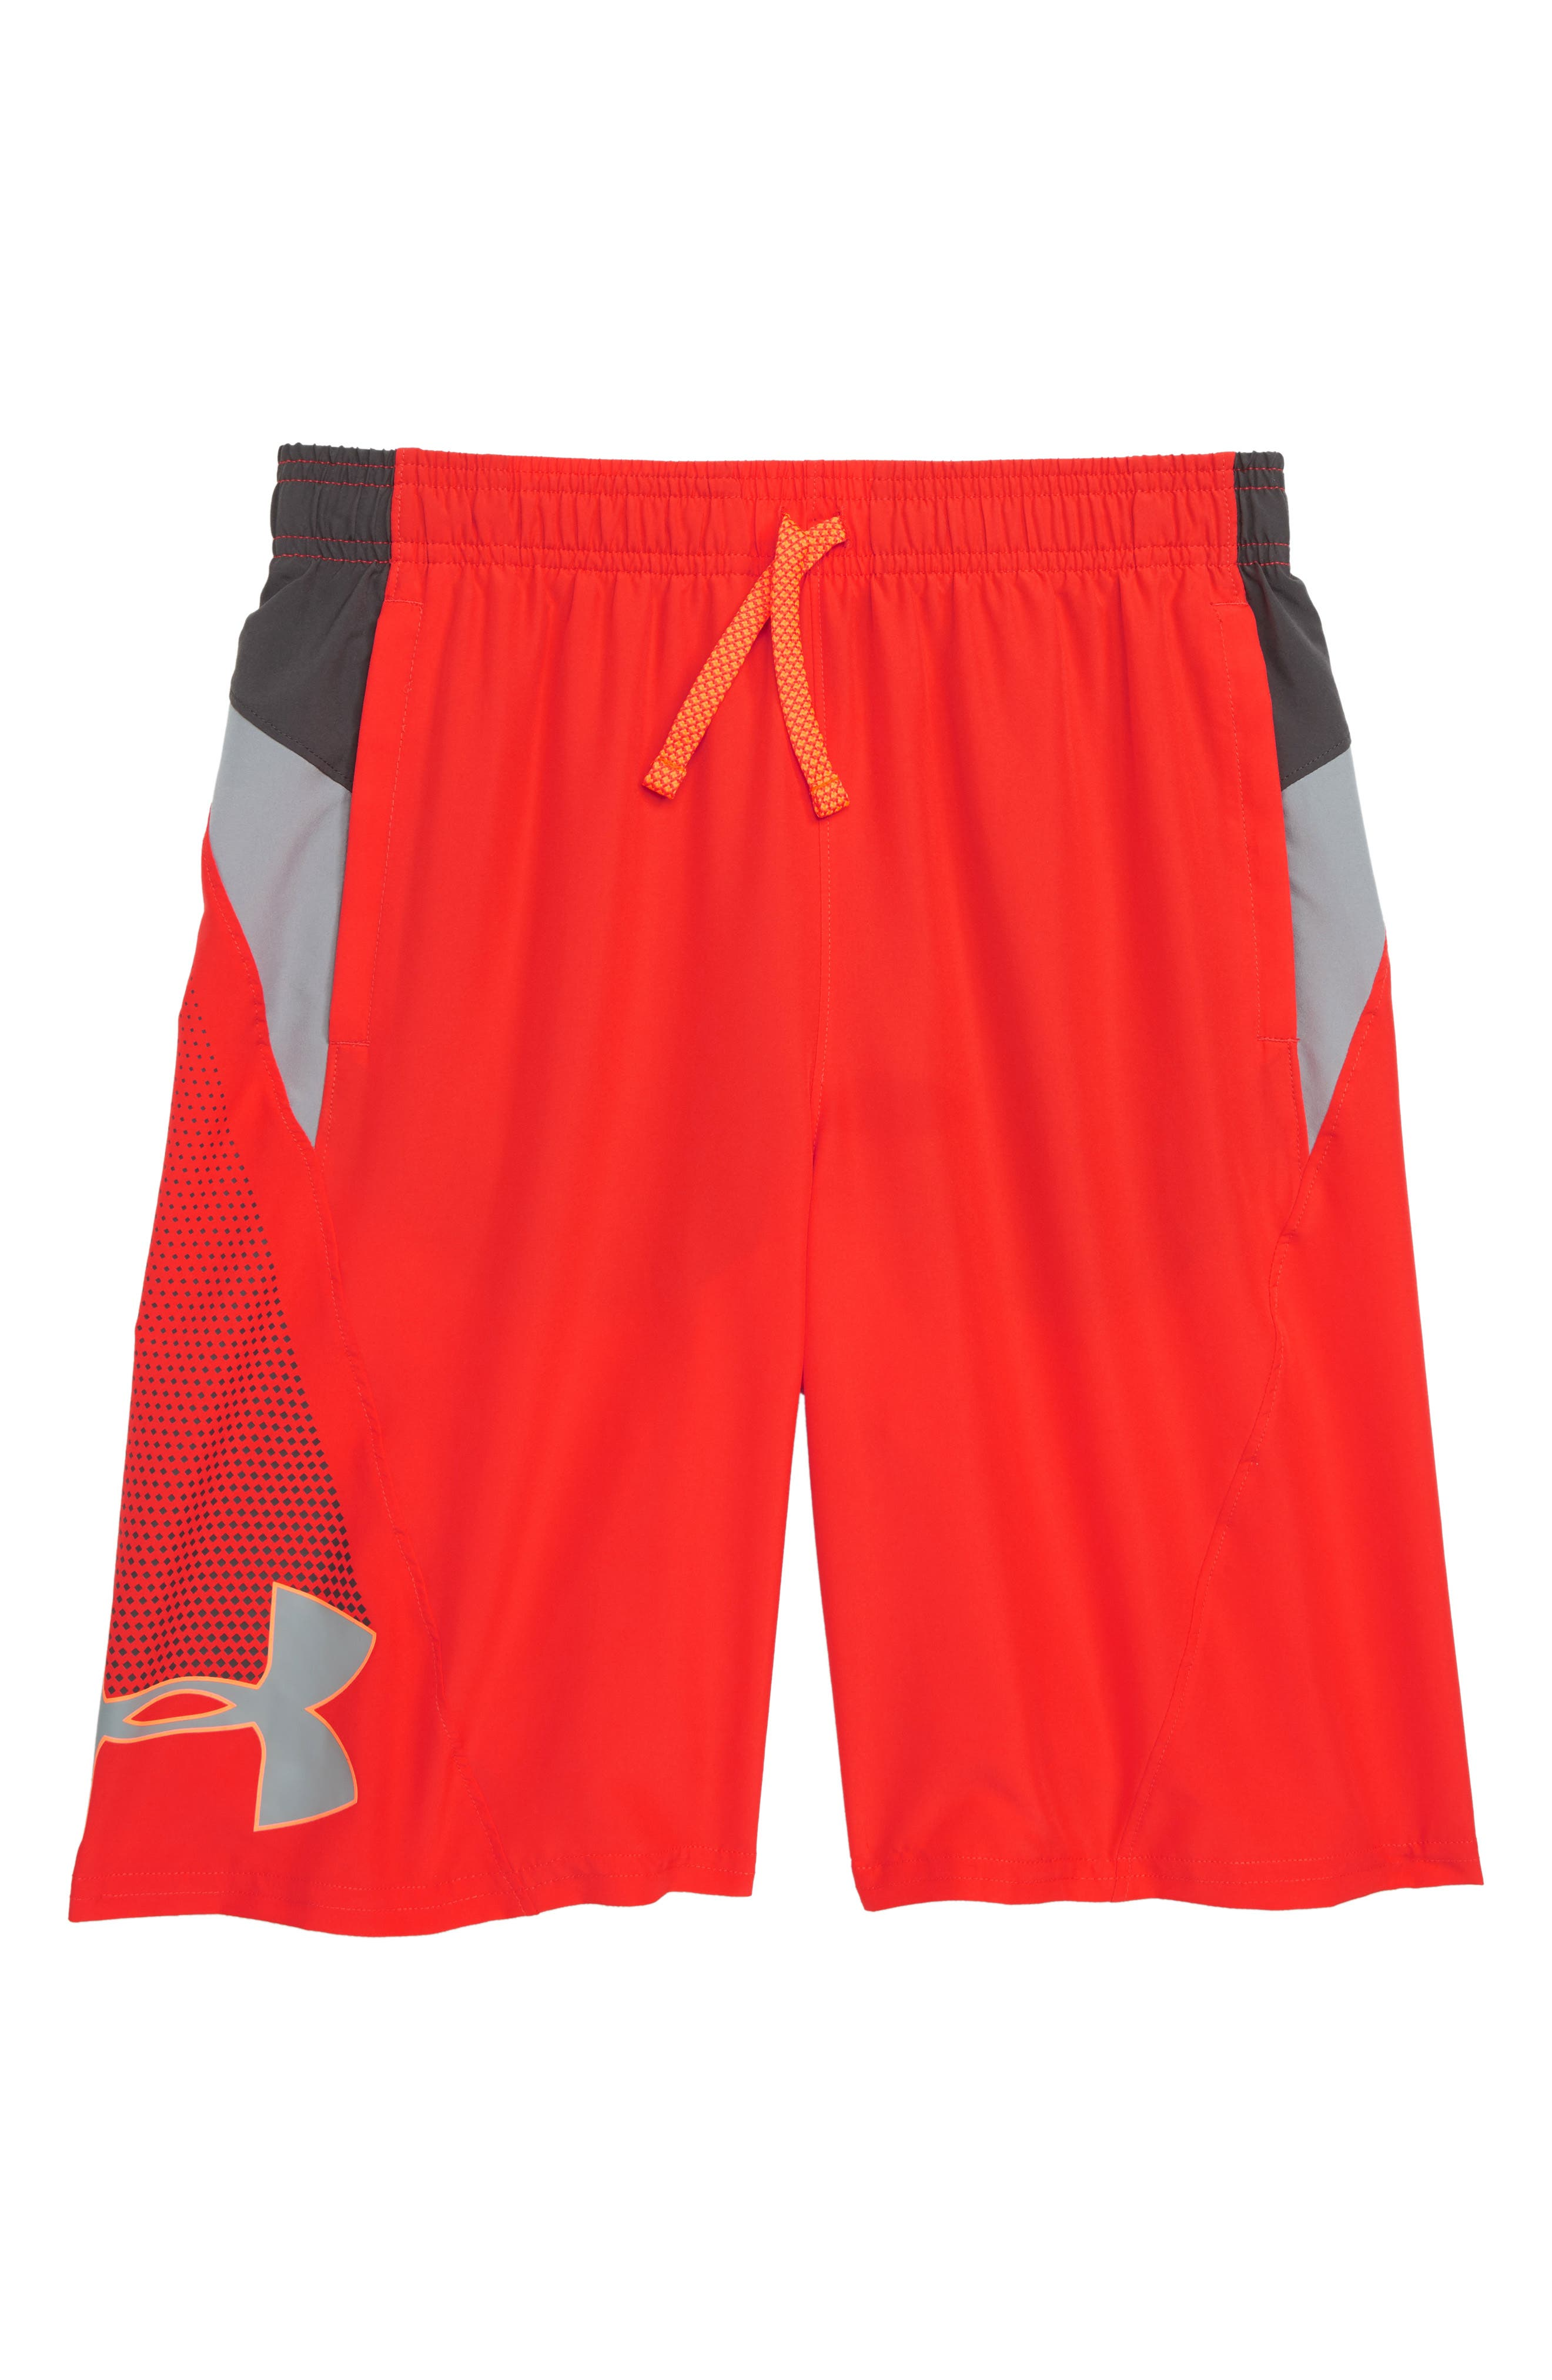 Evolve HeatGear<sup>®</sup> Woven Shorts,                         Main,                         color, RADIO RED/ CHARCOAL